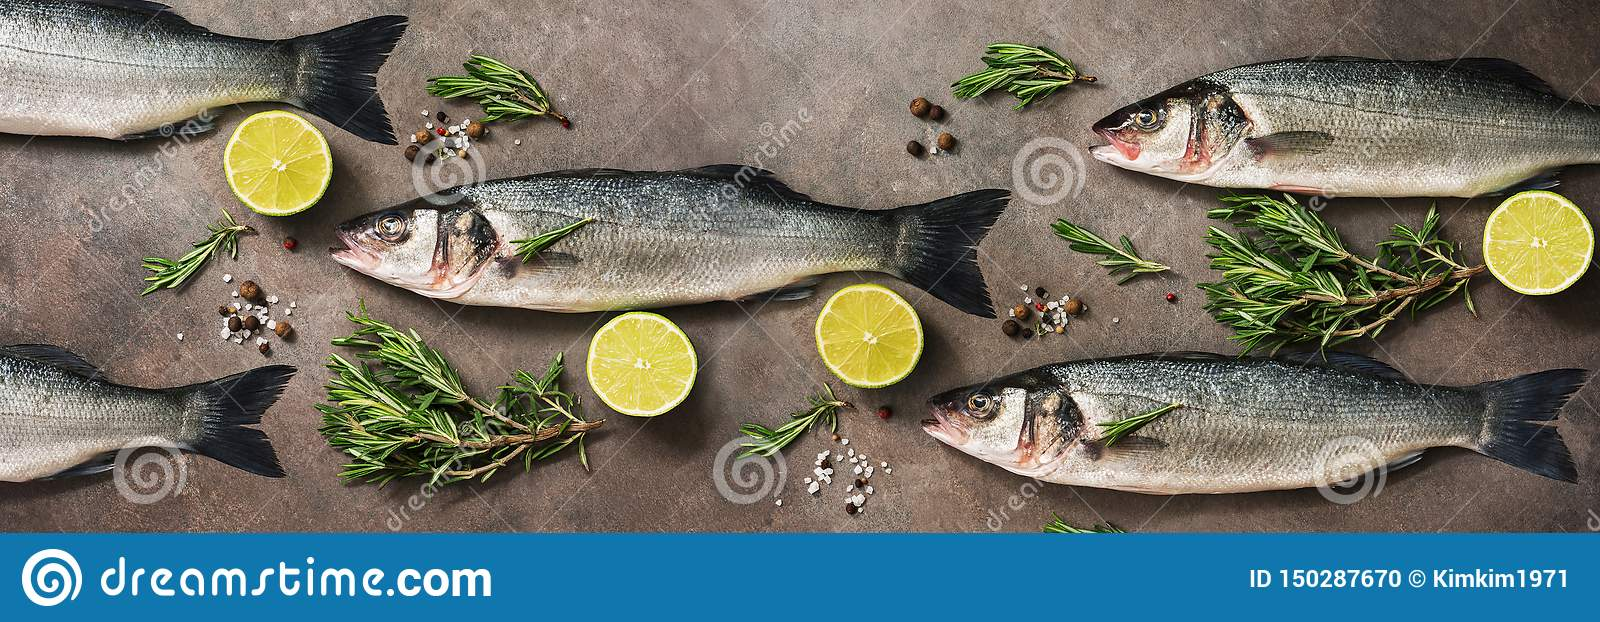 Fresh raw sea bass fish with rosemary and lime on a dark brown rustic background,banner. Flat lay, overhead view